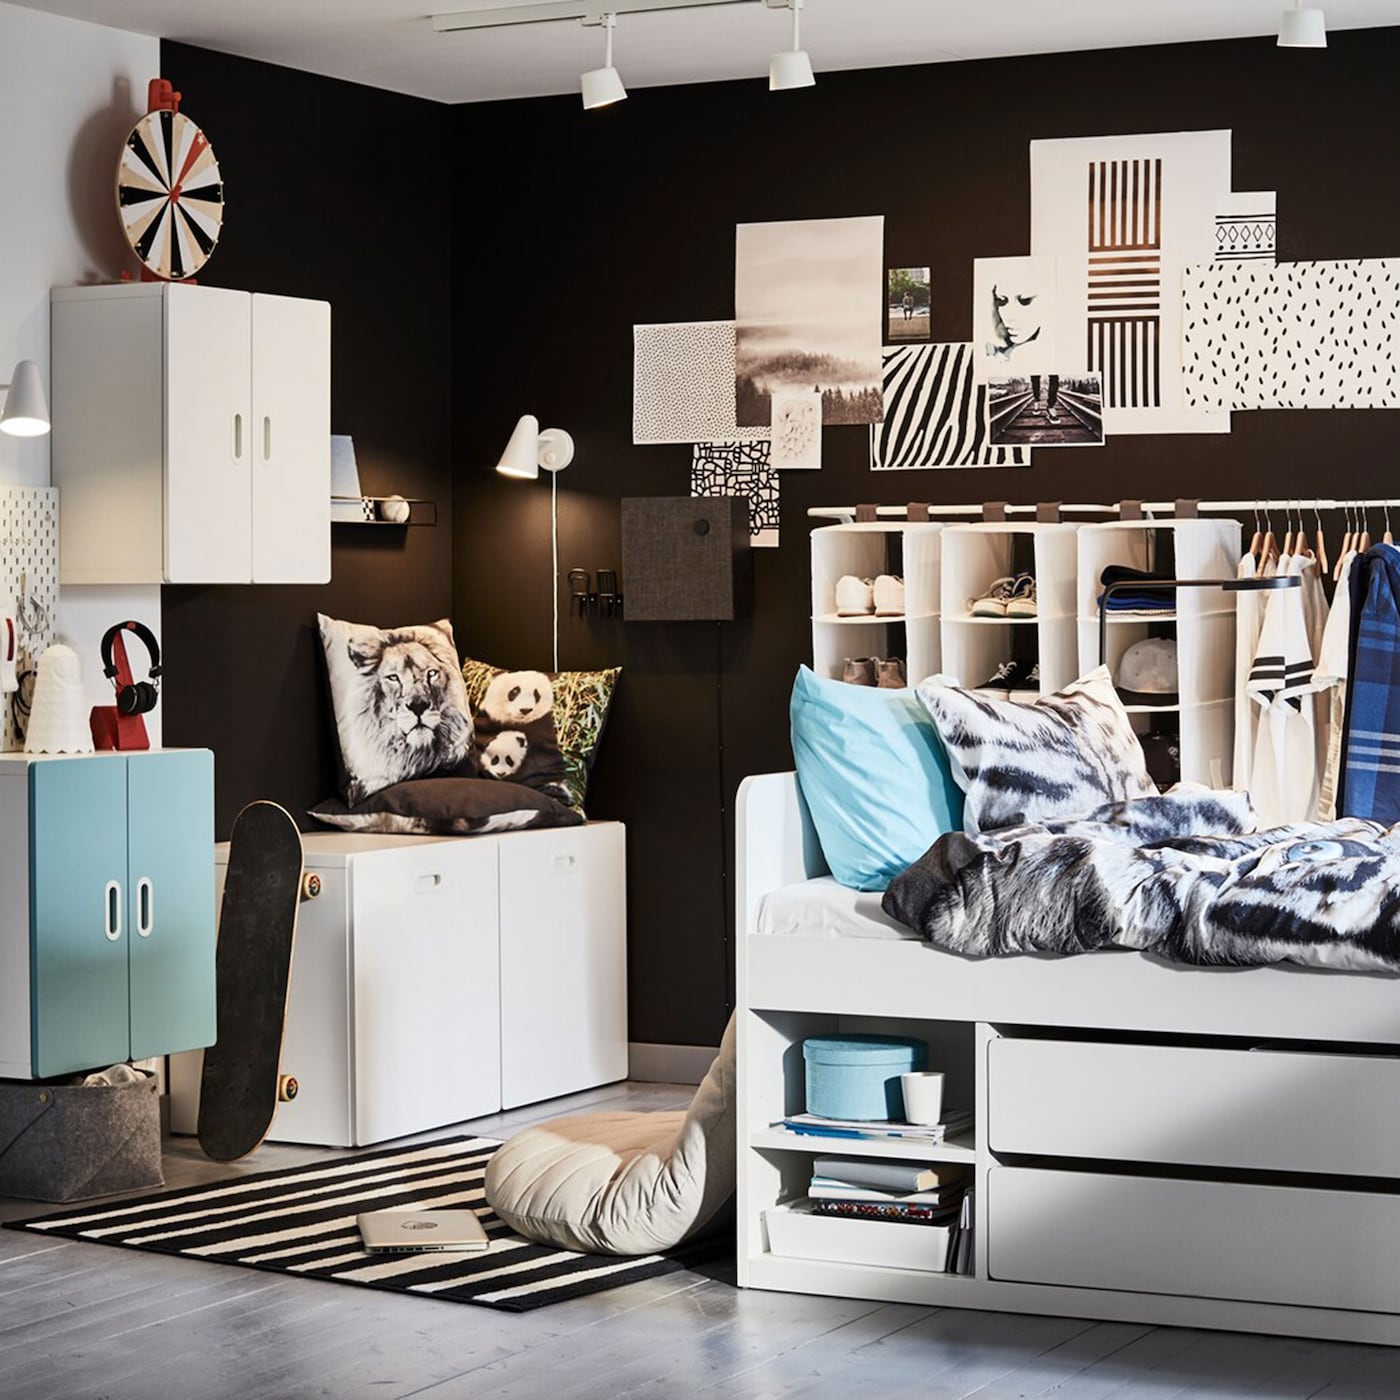 Ikea Small Bedroom Ideas: A Cool And Storage-friendly Teenage Room